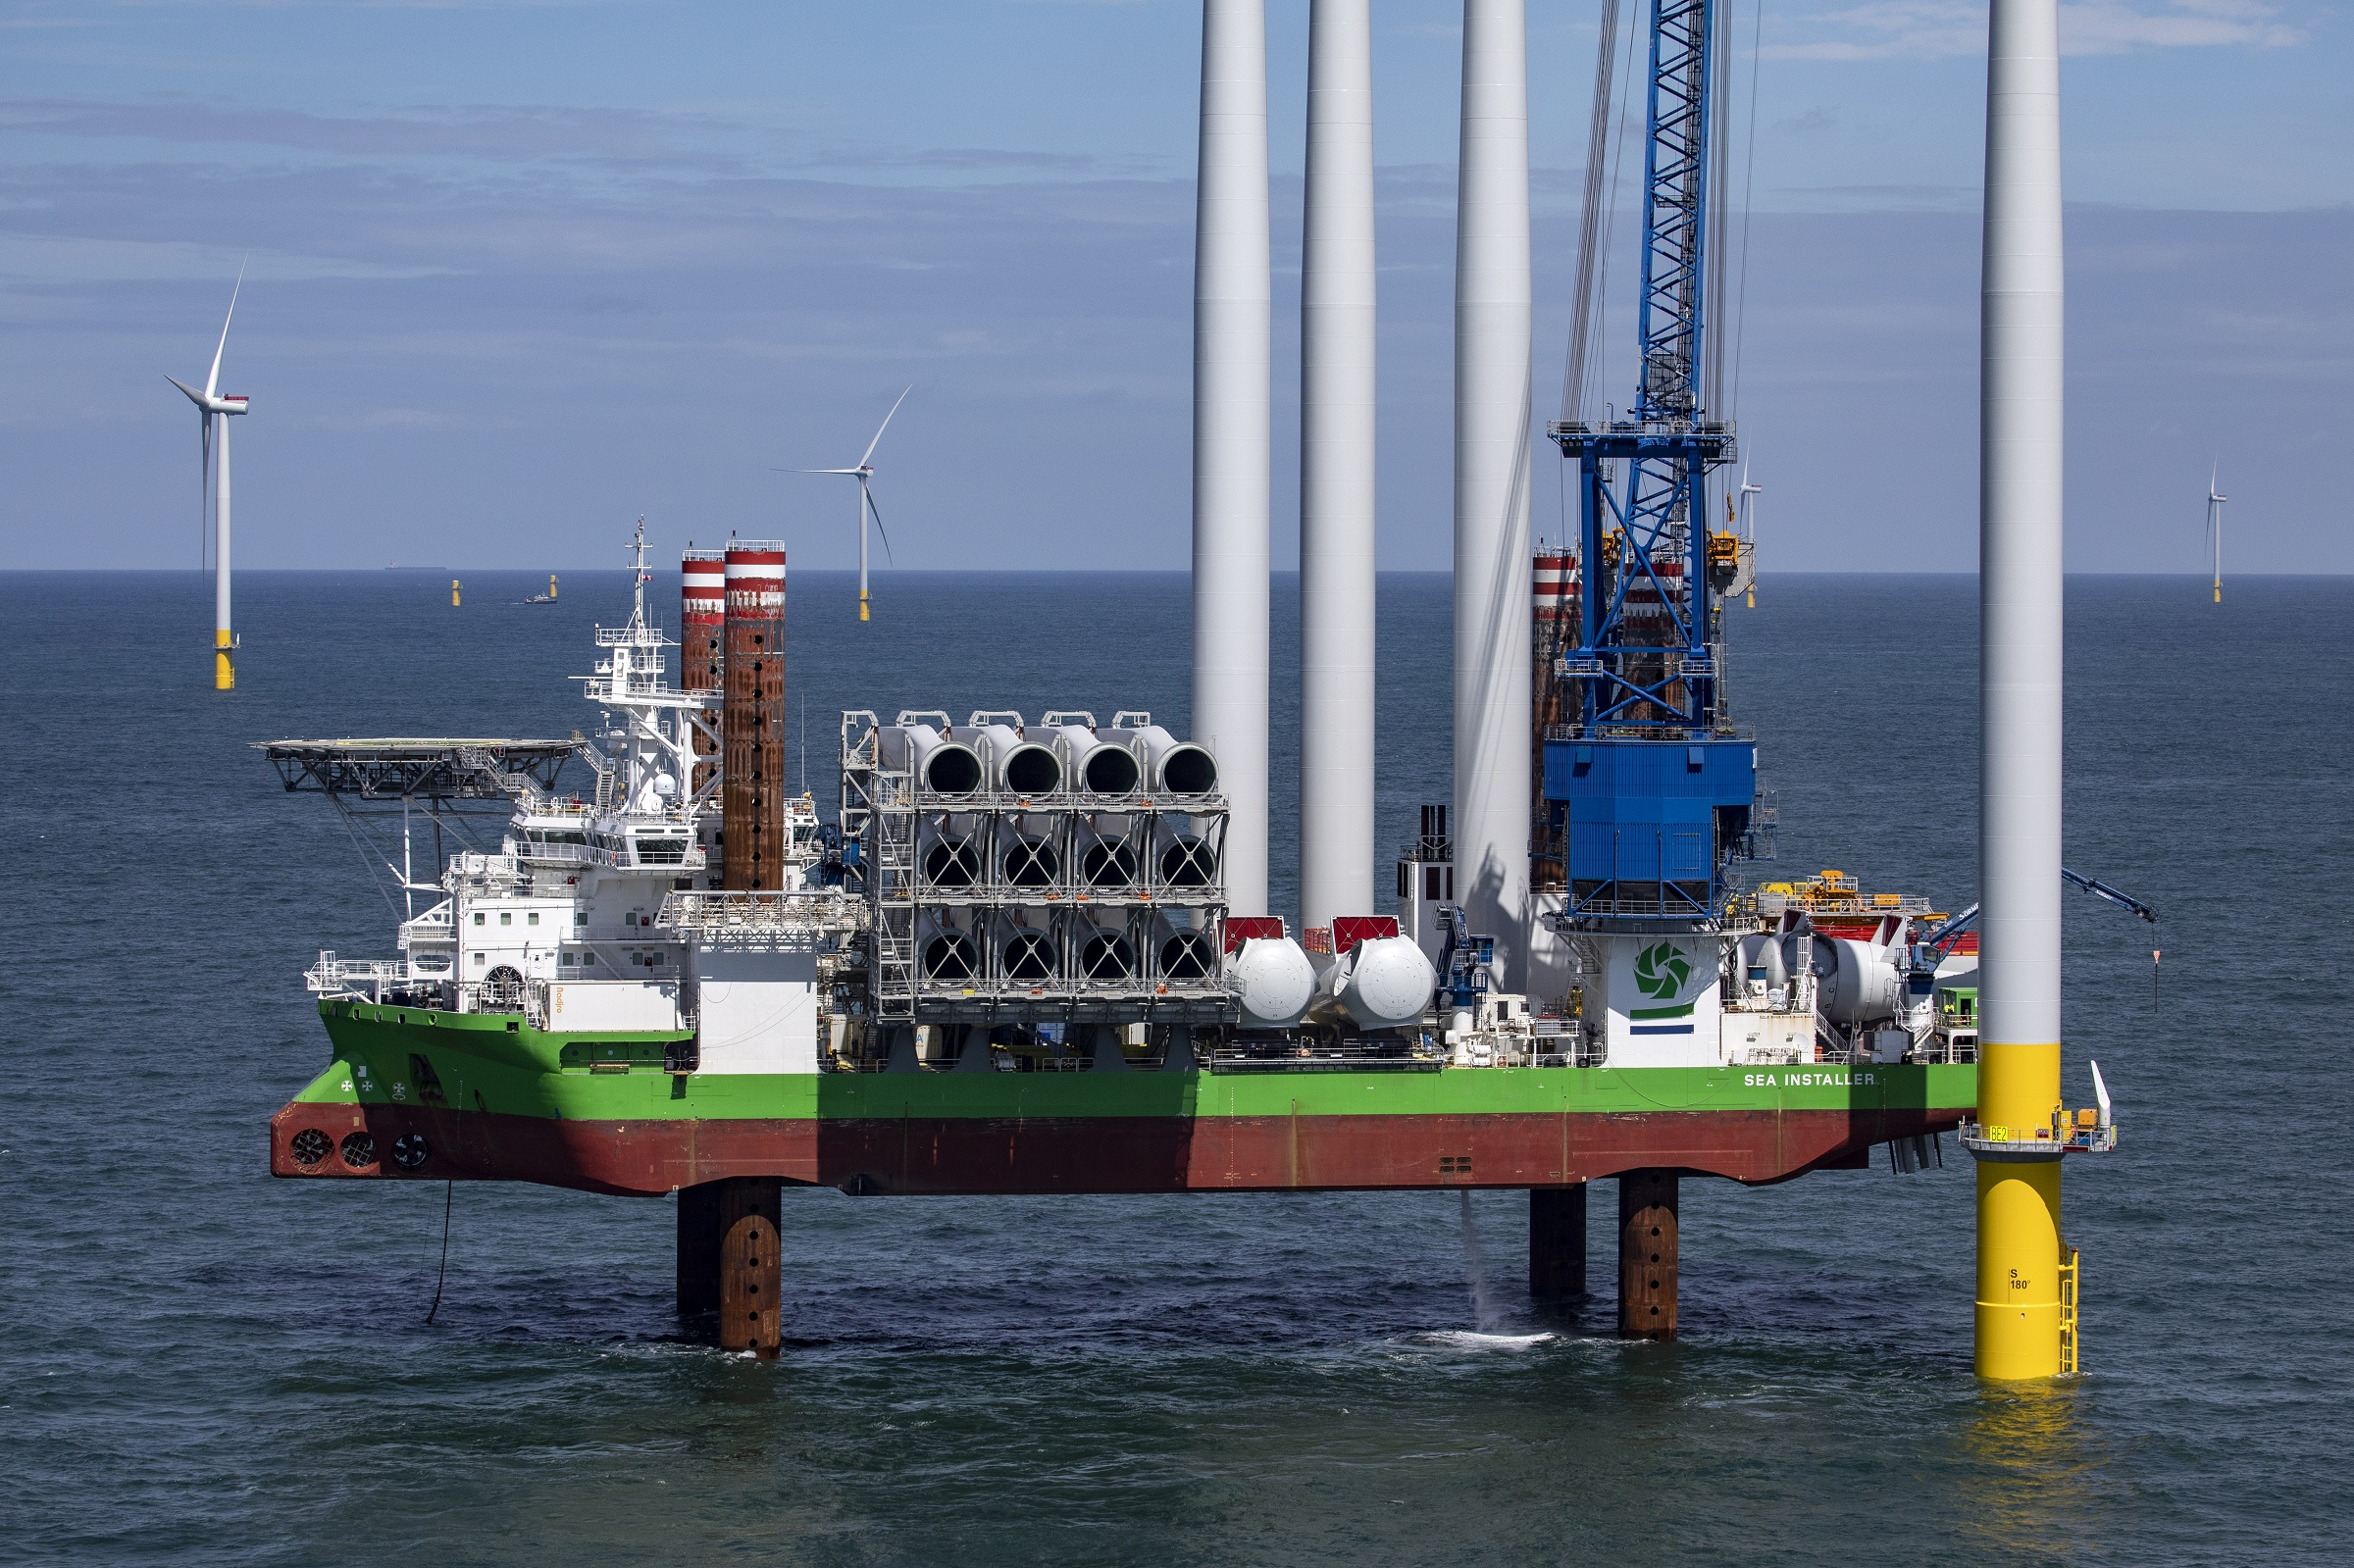 DEME Offshore prepares for next generation turbines with major crane upgrade for 'Sea Installer'